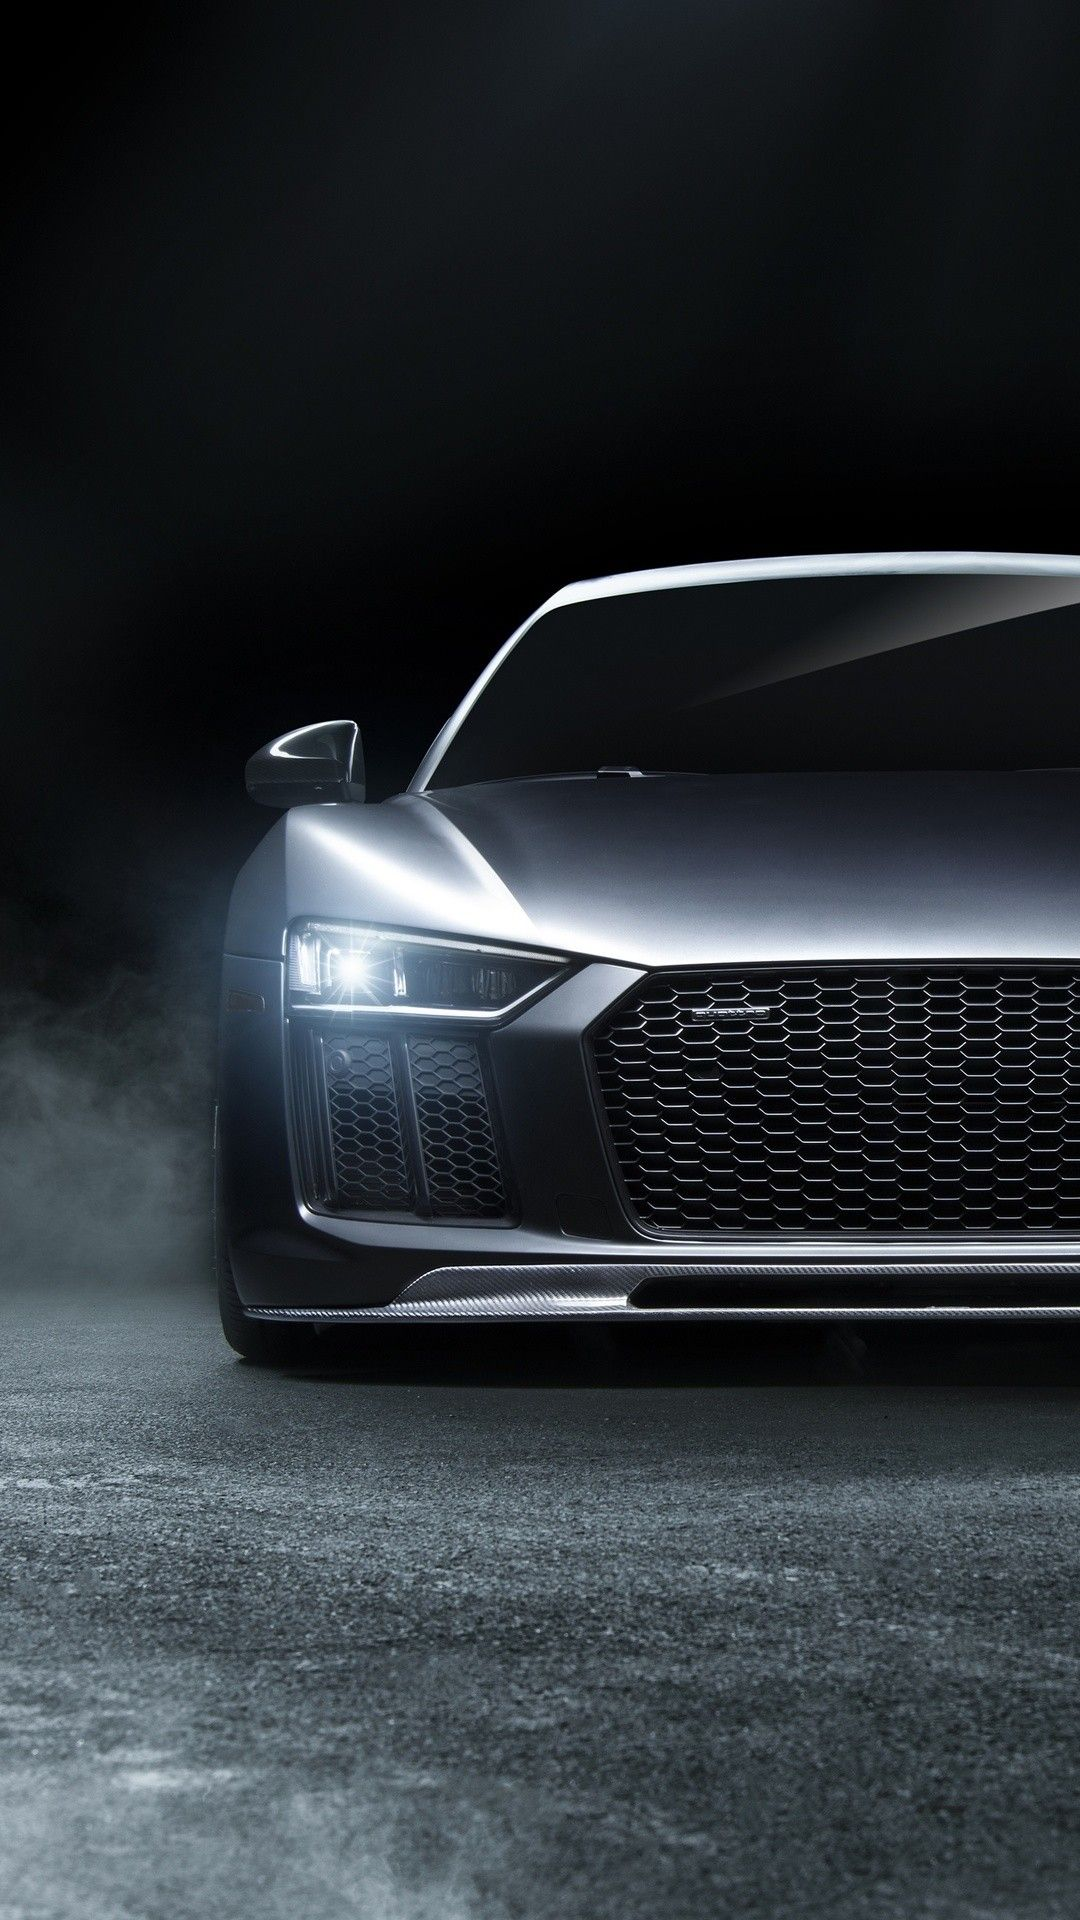 Audi R7 Best Wallpapers Android Lock Screen Wallpaper Android Lock Screen Wallpaper